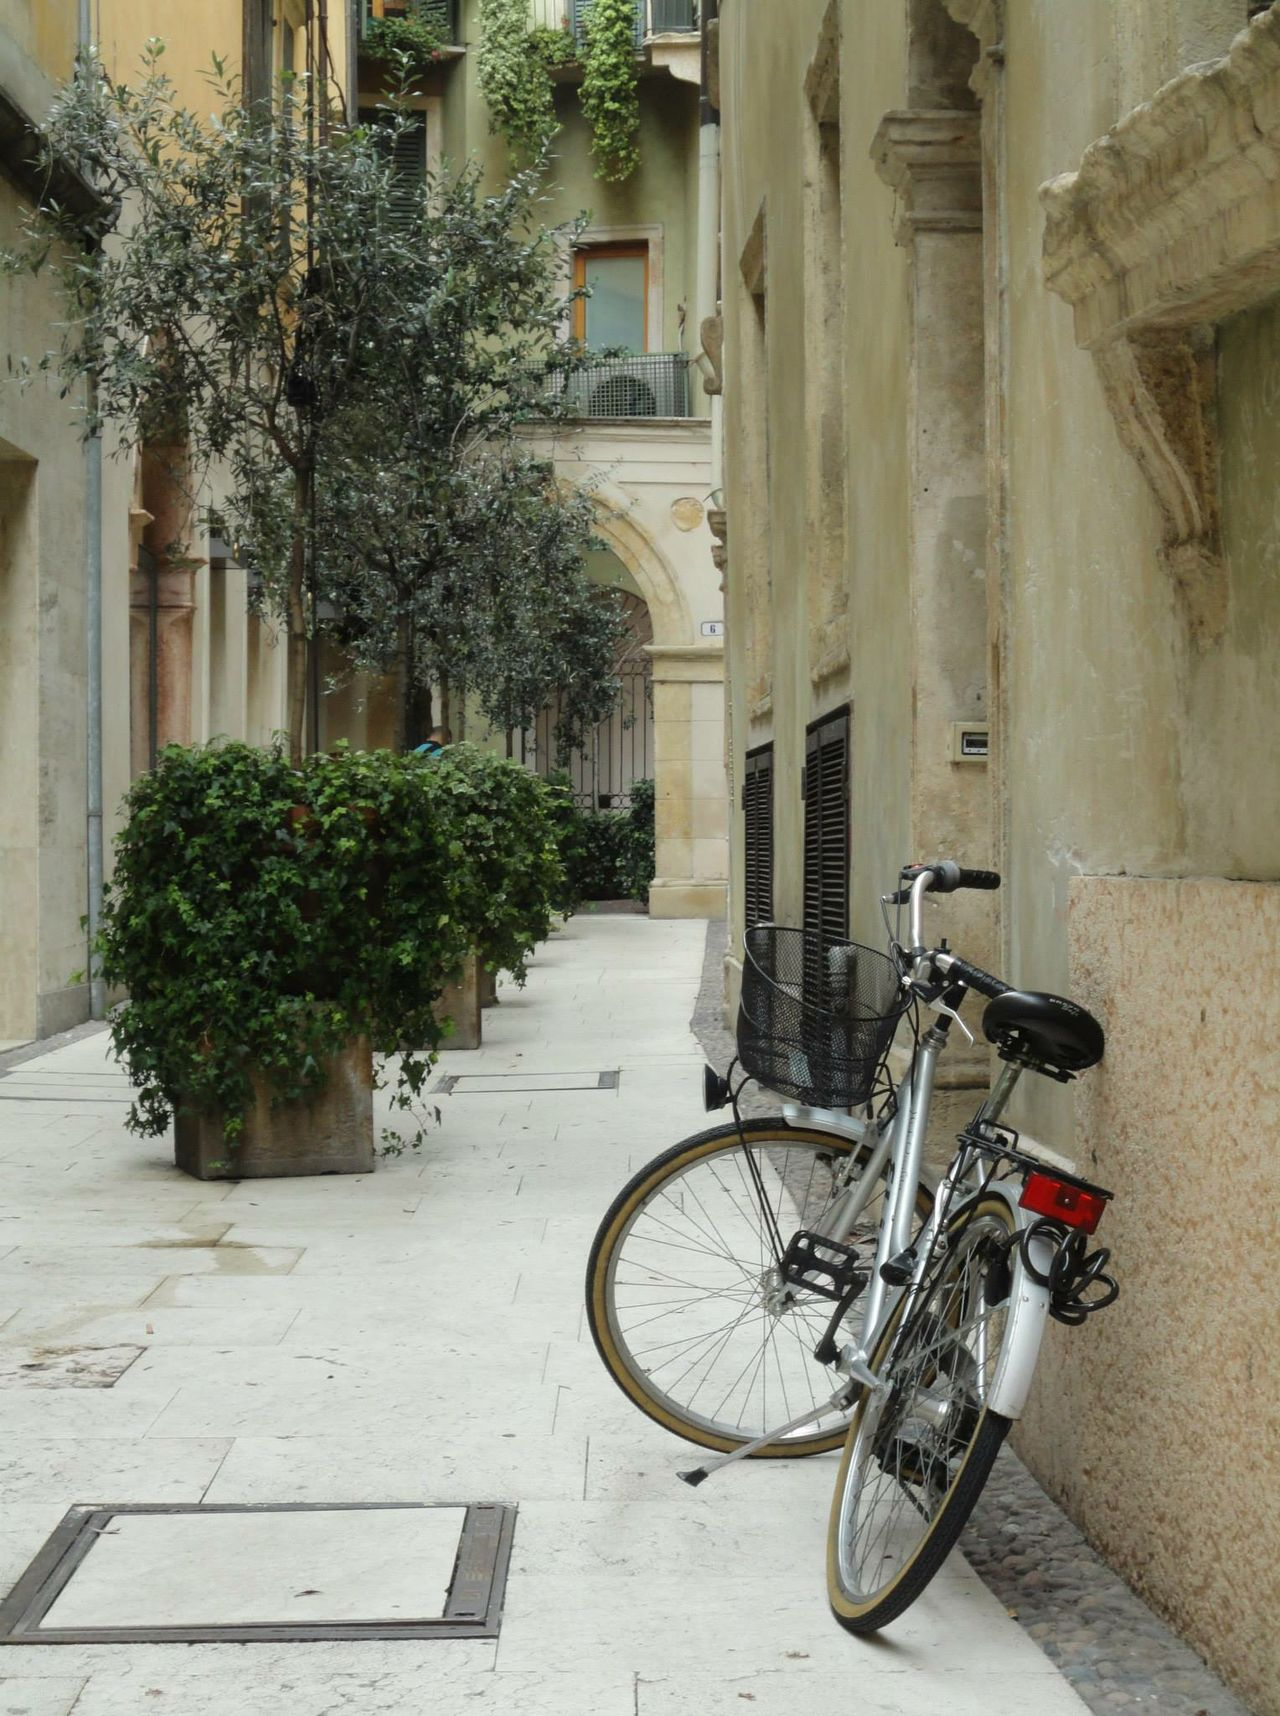 Architecture Leaves View Streetphotography Plants Bike Traveling Urban Geometry Looking To The Other Side Throw A Curve